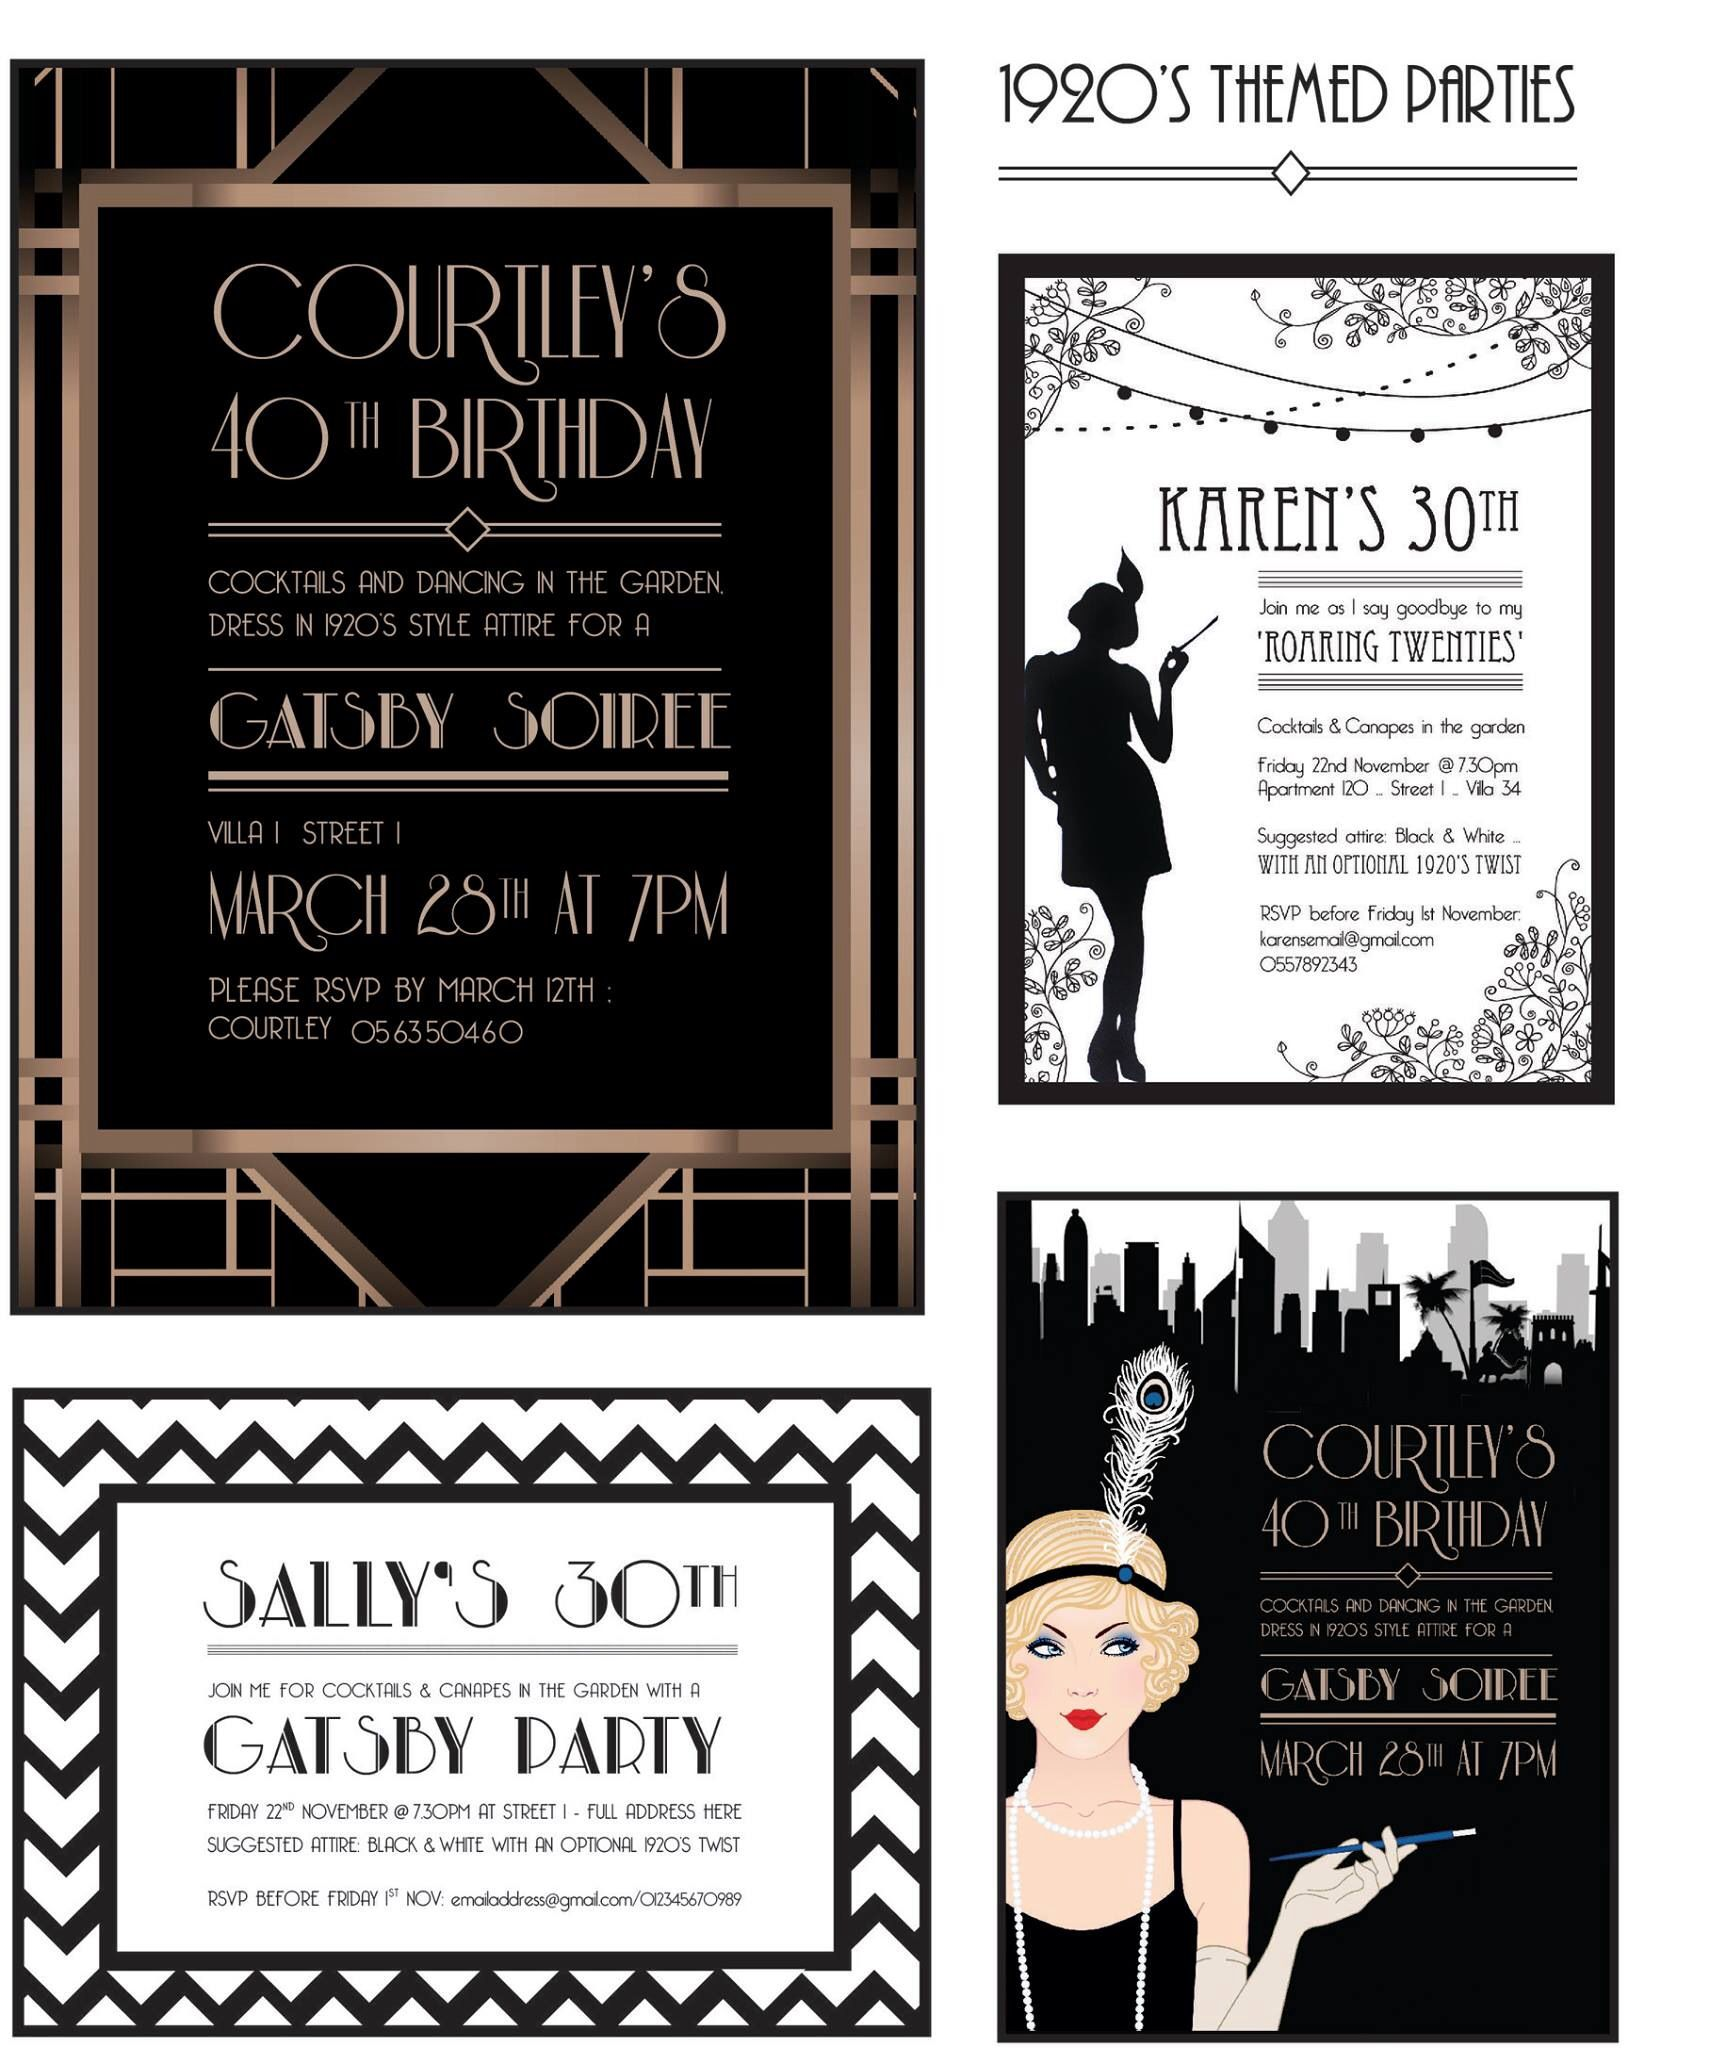 Gatsby style 1920s party invites designed by prettyinprint.me ...